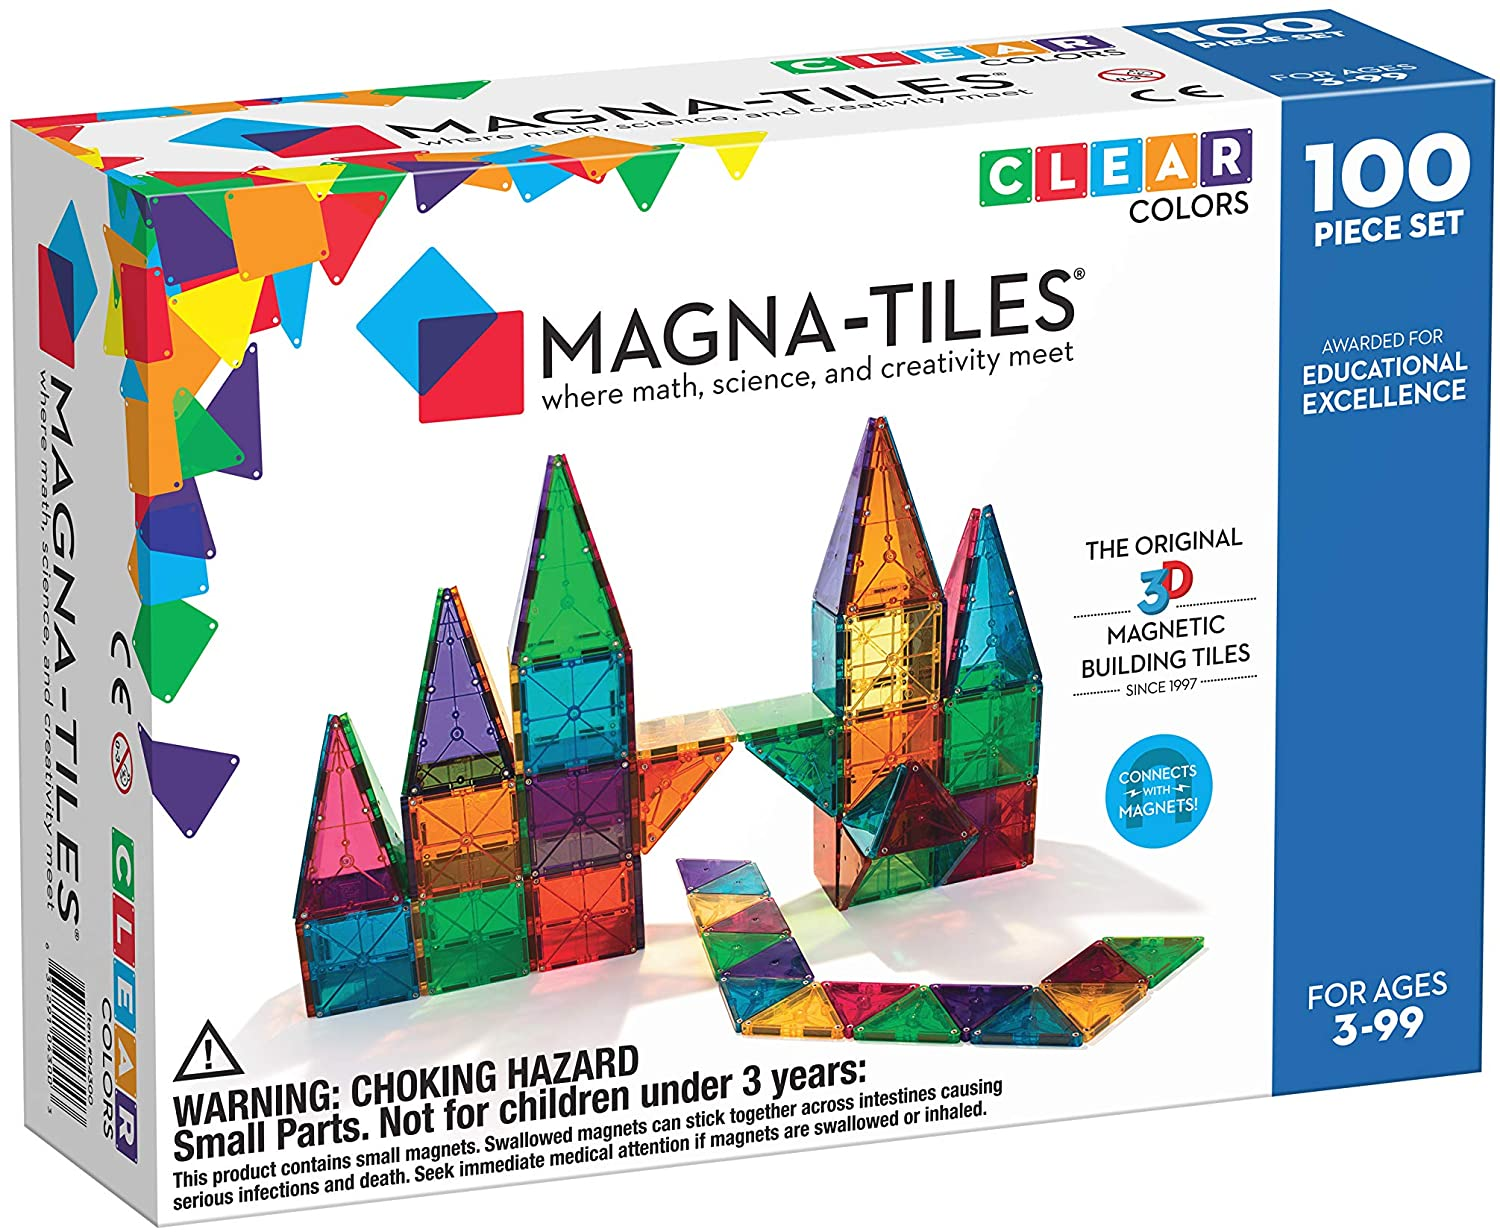 Magna-Tiles Clear Colors 100 Pieces Set